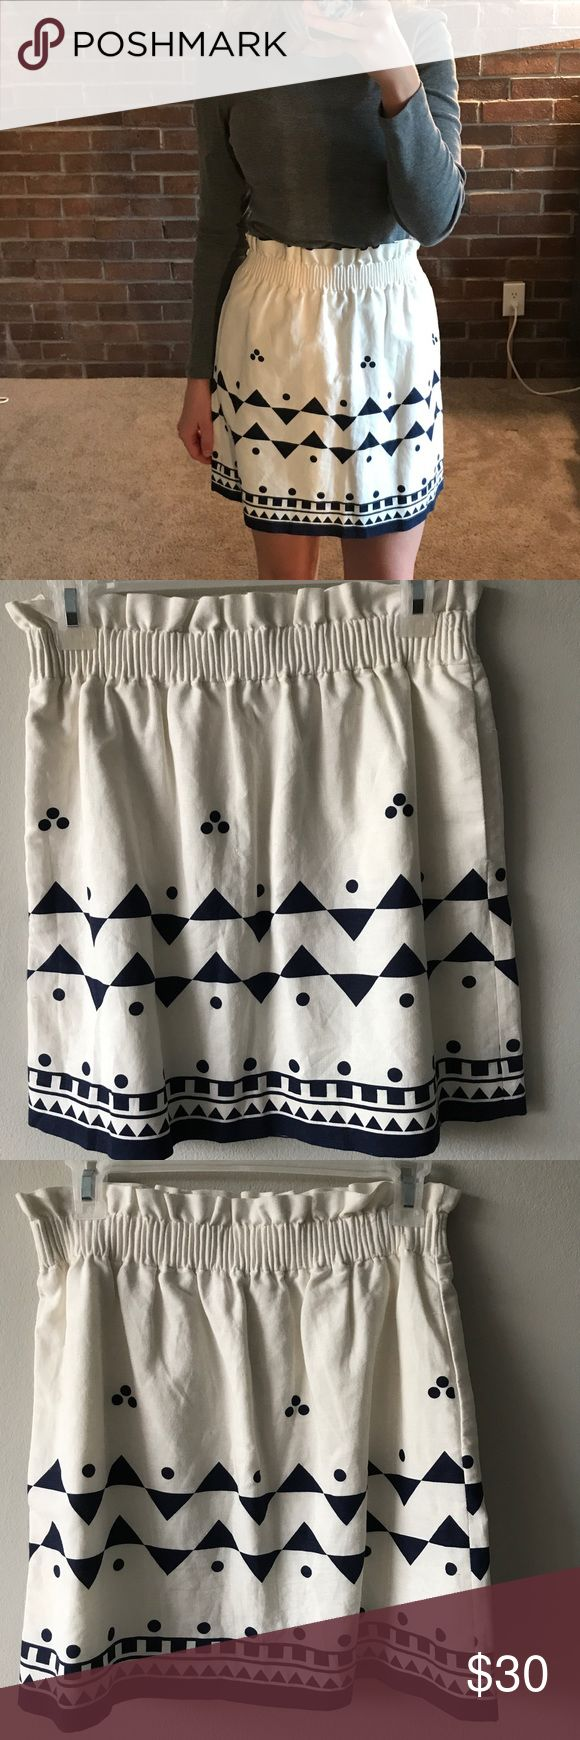 J.crew blue and white skirt White skirt with a dark blue tribal print on the bottom. Great fabric that doesn't wrinkly easily. Only worn a couple of times! J.Crew Factory Skirts Pencil